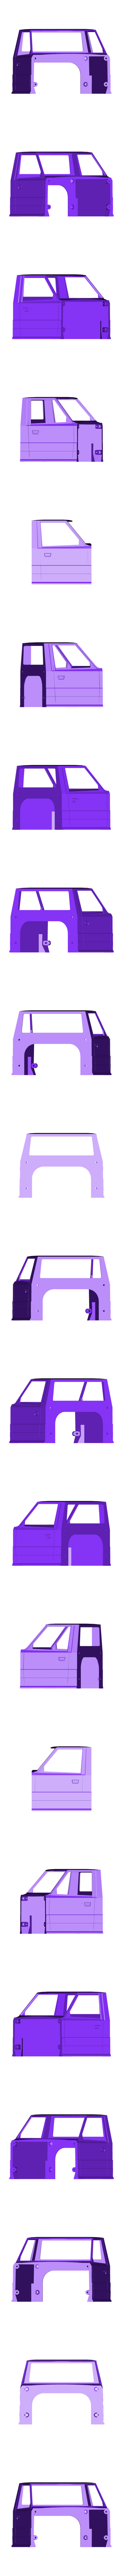 Body02-windows.stl Download free STL file Fully printable Monster Truck • 3D printer design, tahustvedt